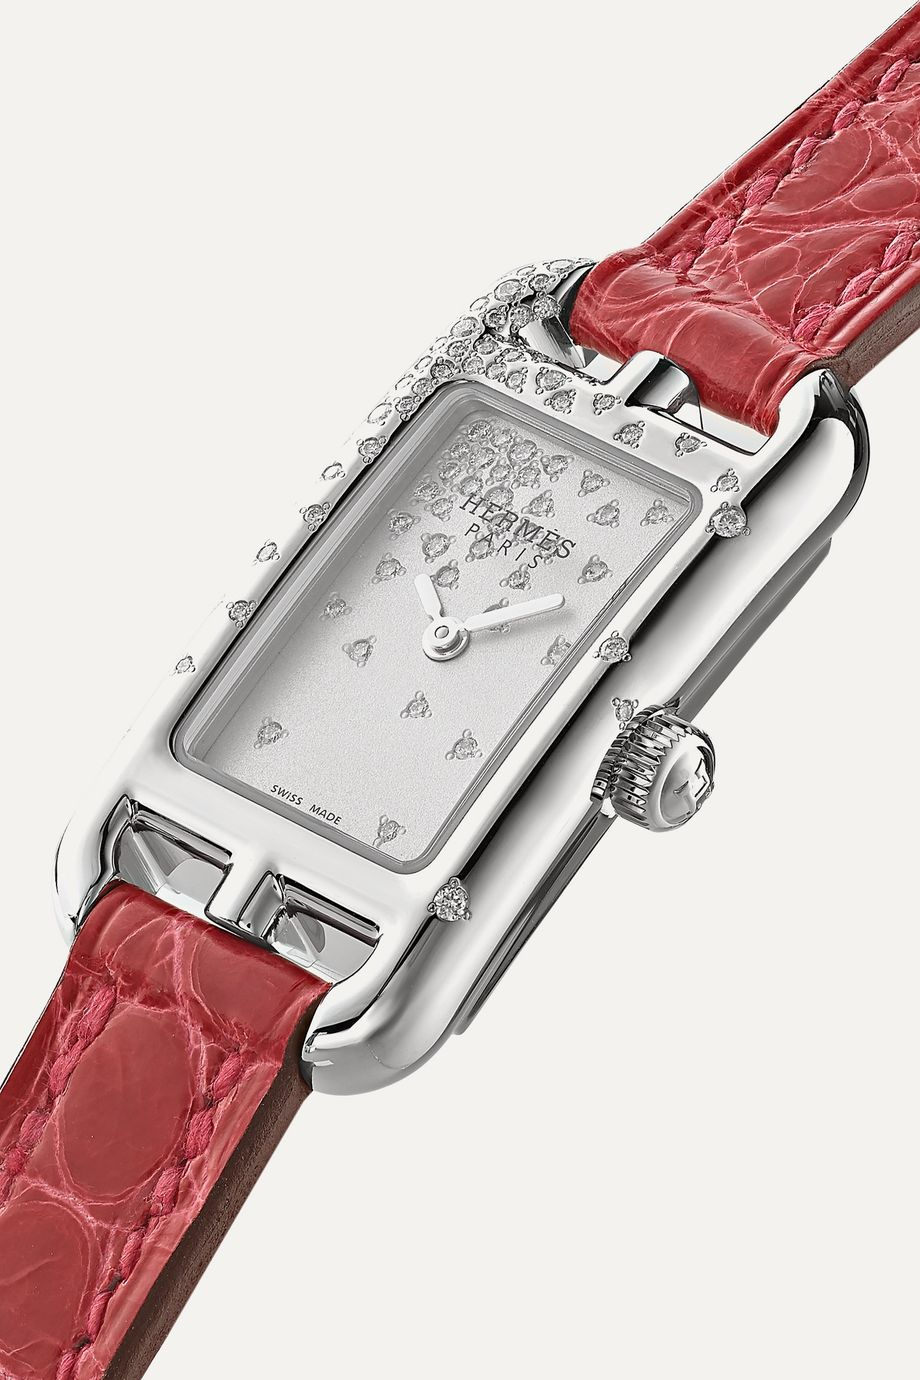 Hermès Timepieces Nantucket Jeté de Diamants 17mm very small stainless steel, alligator and diamond watch